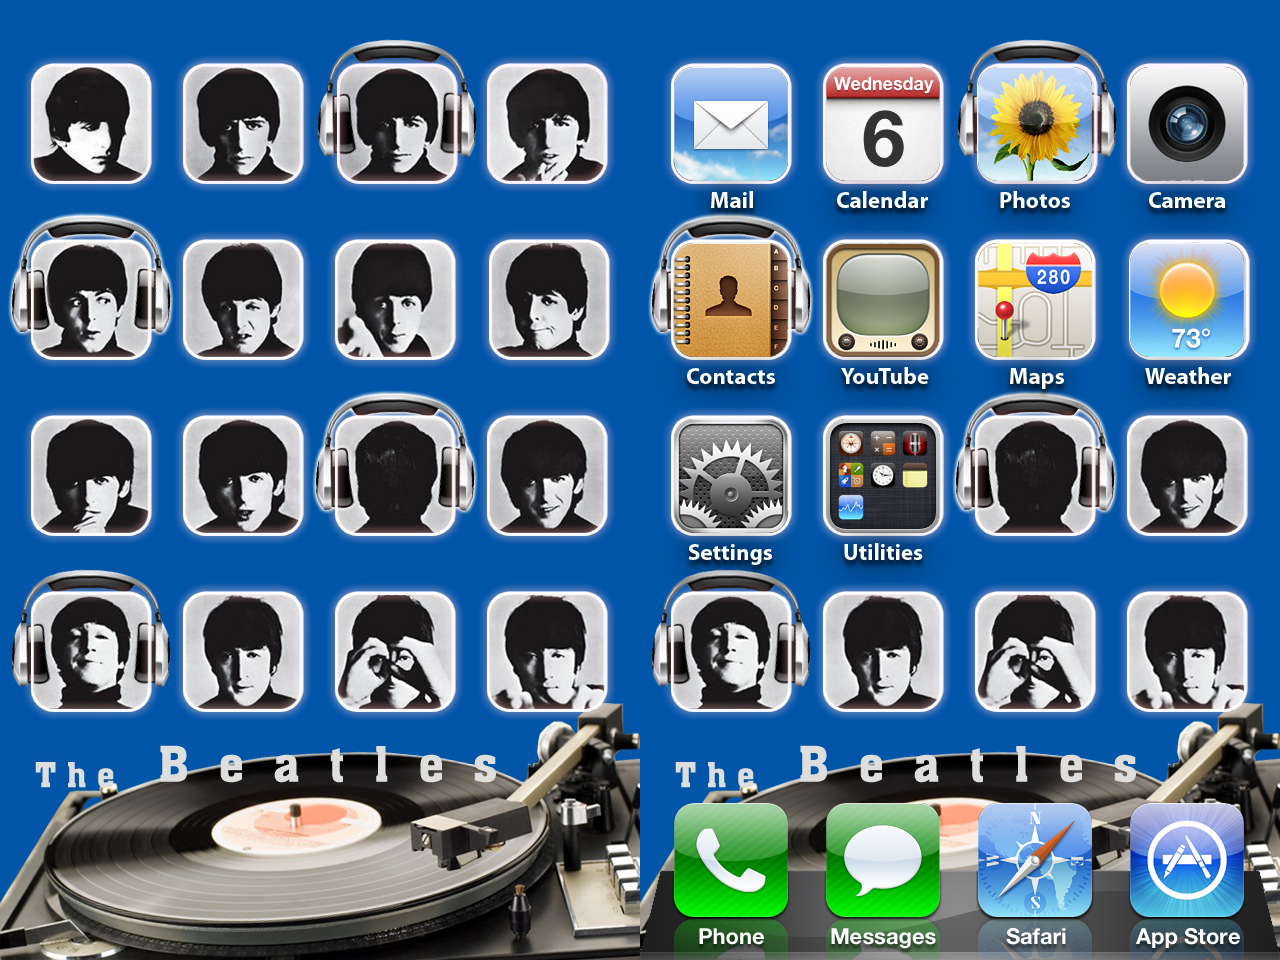 IPhone GS, G The beatles Wallpapers HD, Desktop Backgrounds 1280x960